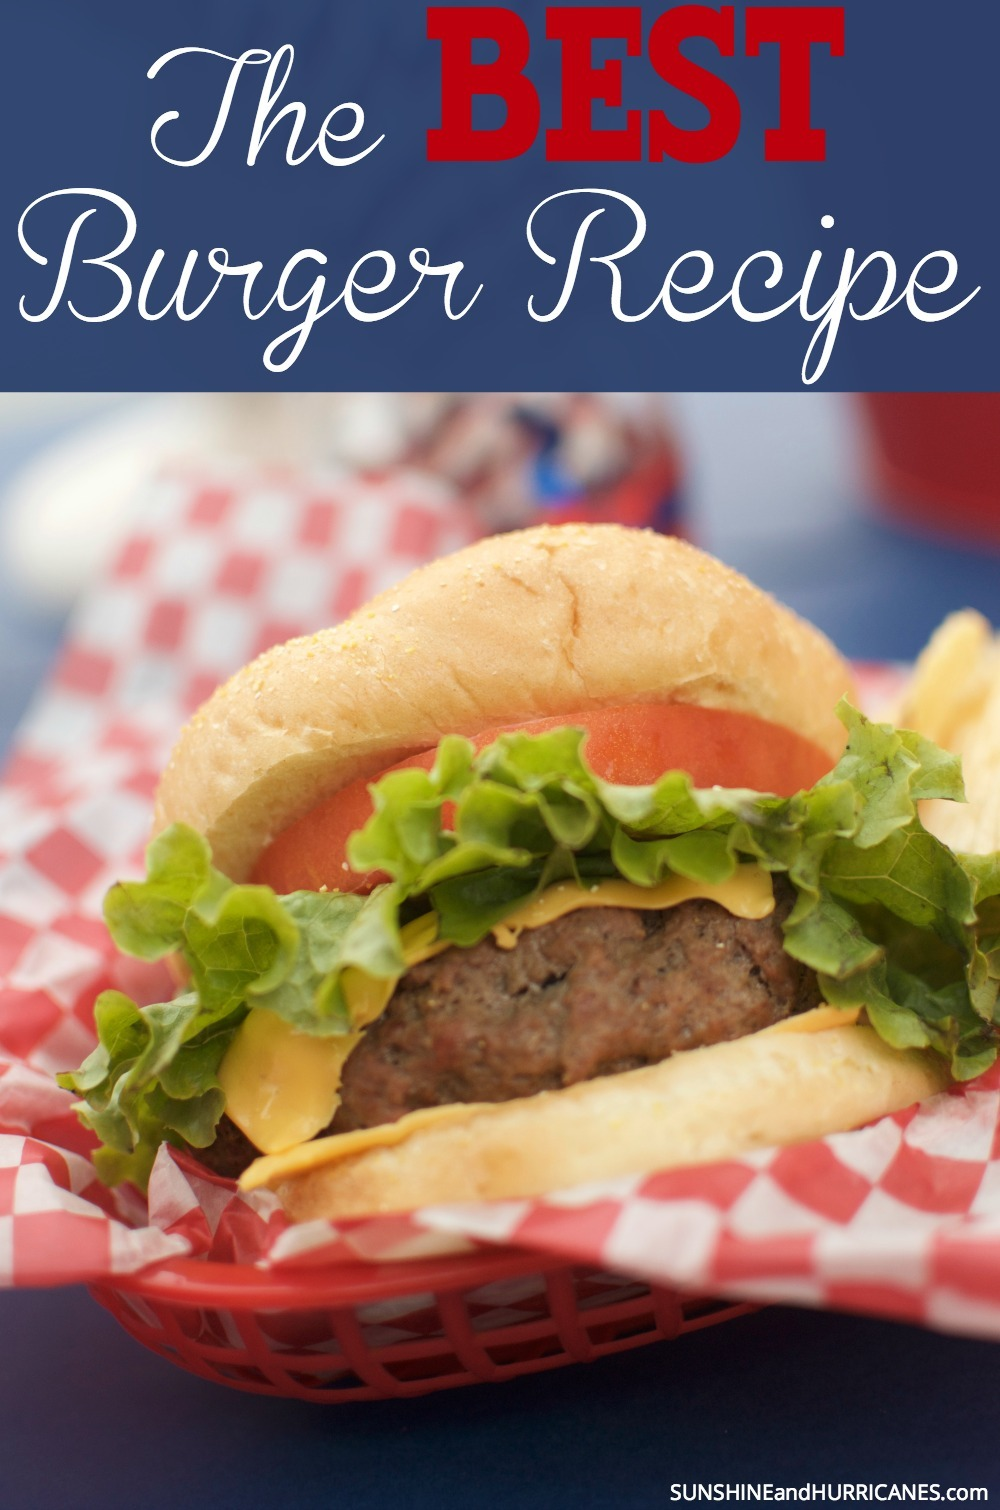 There is nothing better than a big, juicy hamburger right off the grill. The aroma just smells of summer fun and good times with friends and family. While we know everyone thinks they've got a pretty darn good burger recipe, we're here to tell you that you haven't really tasted heaven until you've tried our recipe. We trul believe it is The Best Burger Recipe around (we might even take a wager on it!). SunshineandHurricanes.com